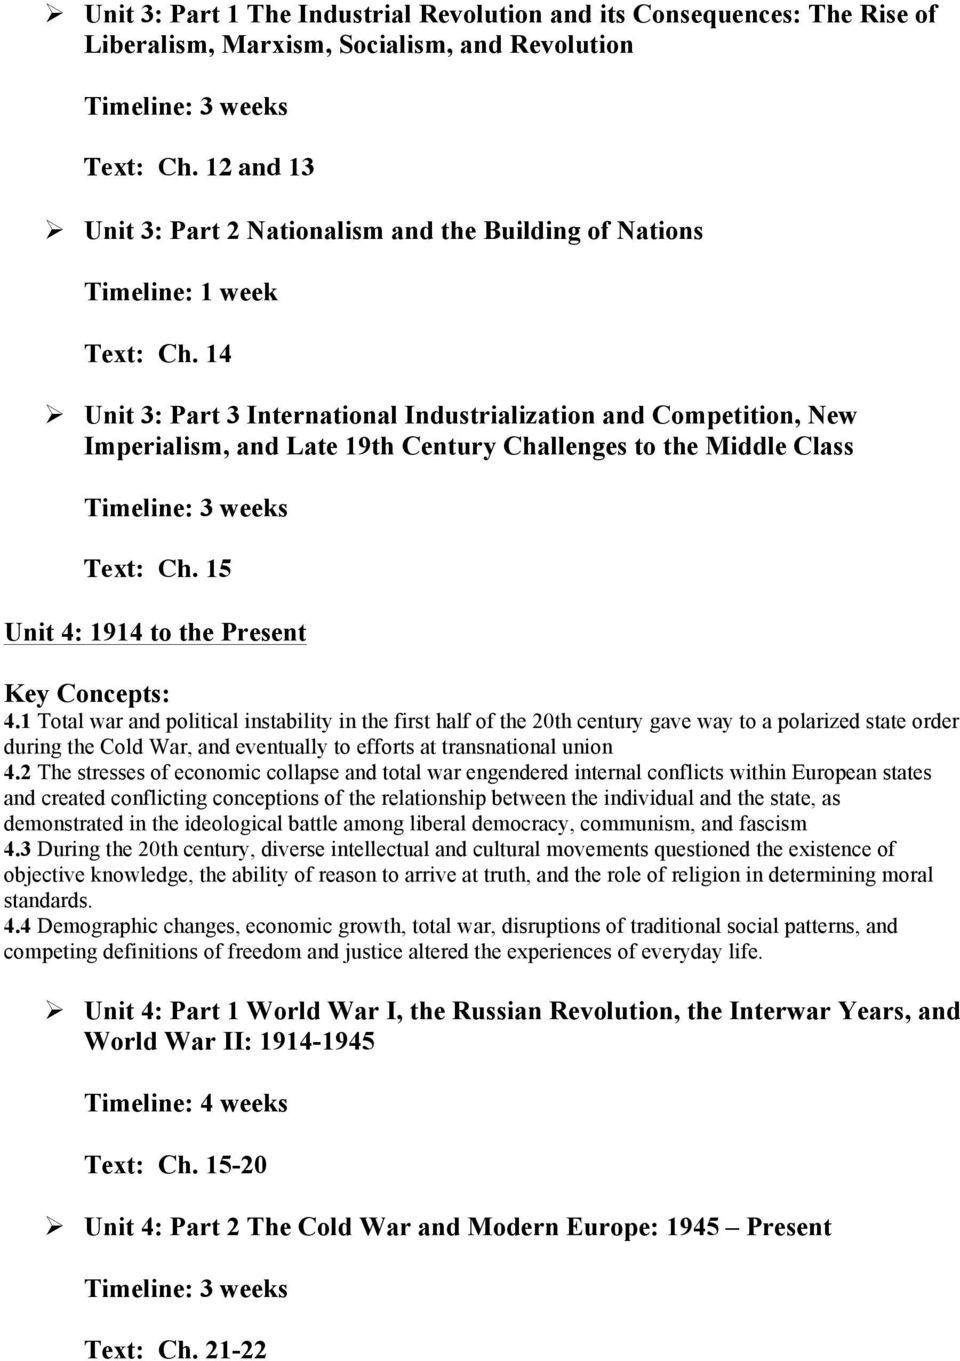 14 Ø Unit 3: Part 3 International Industrialization and Competition, New Imperialism, and Late 19th Century Challenges to the Middle Class Text: Ch. 15 Unit 4: 1914 to the Present 4.